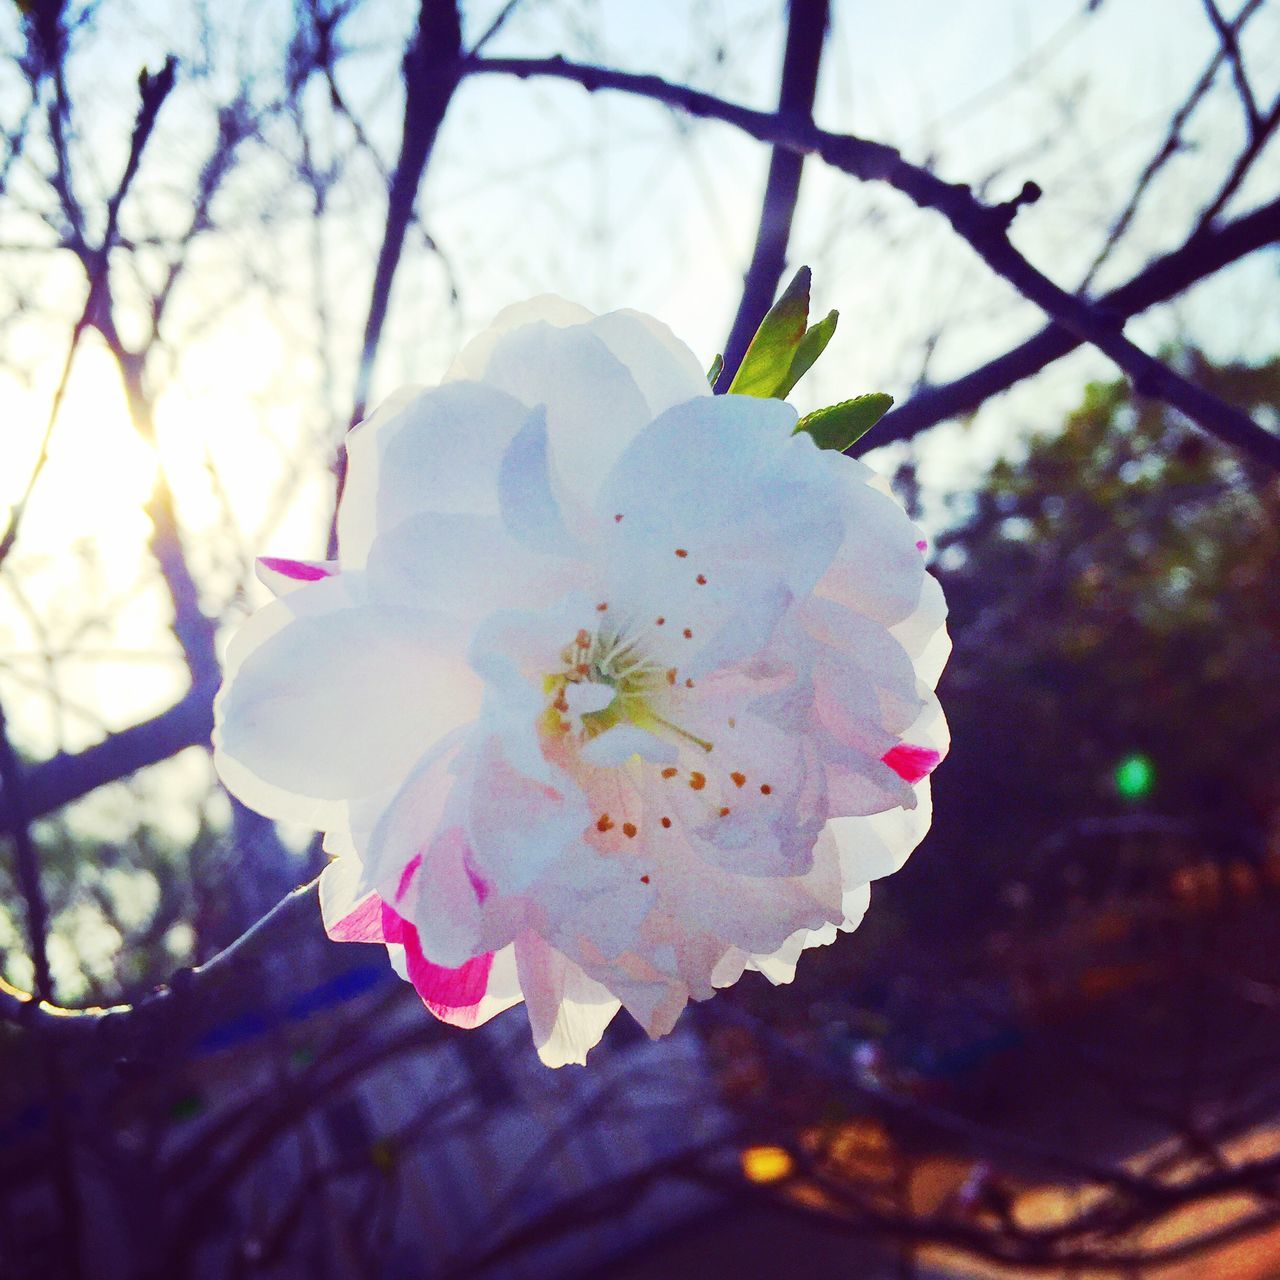 flower, beauty in nature, fragility, blossom, tree, nature, growth, springtime, branch, white color, petal, apple blossom, freshness, twig, botany, no people, flower head, day, close-up, stamen, orchard, plum blossom, outdoors, pink color, low angle view, blooming, sky